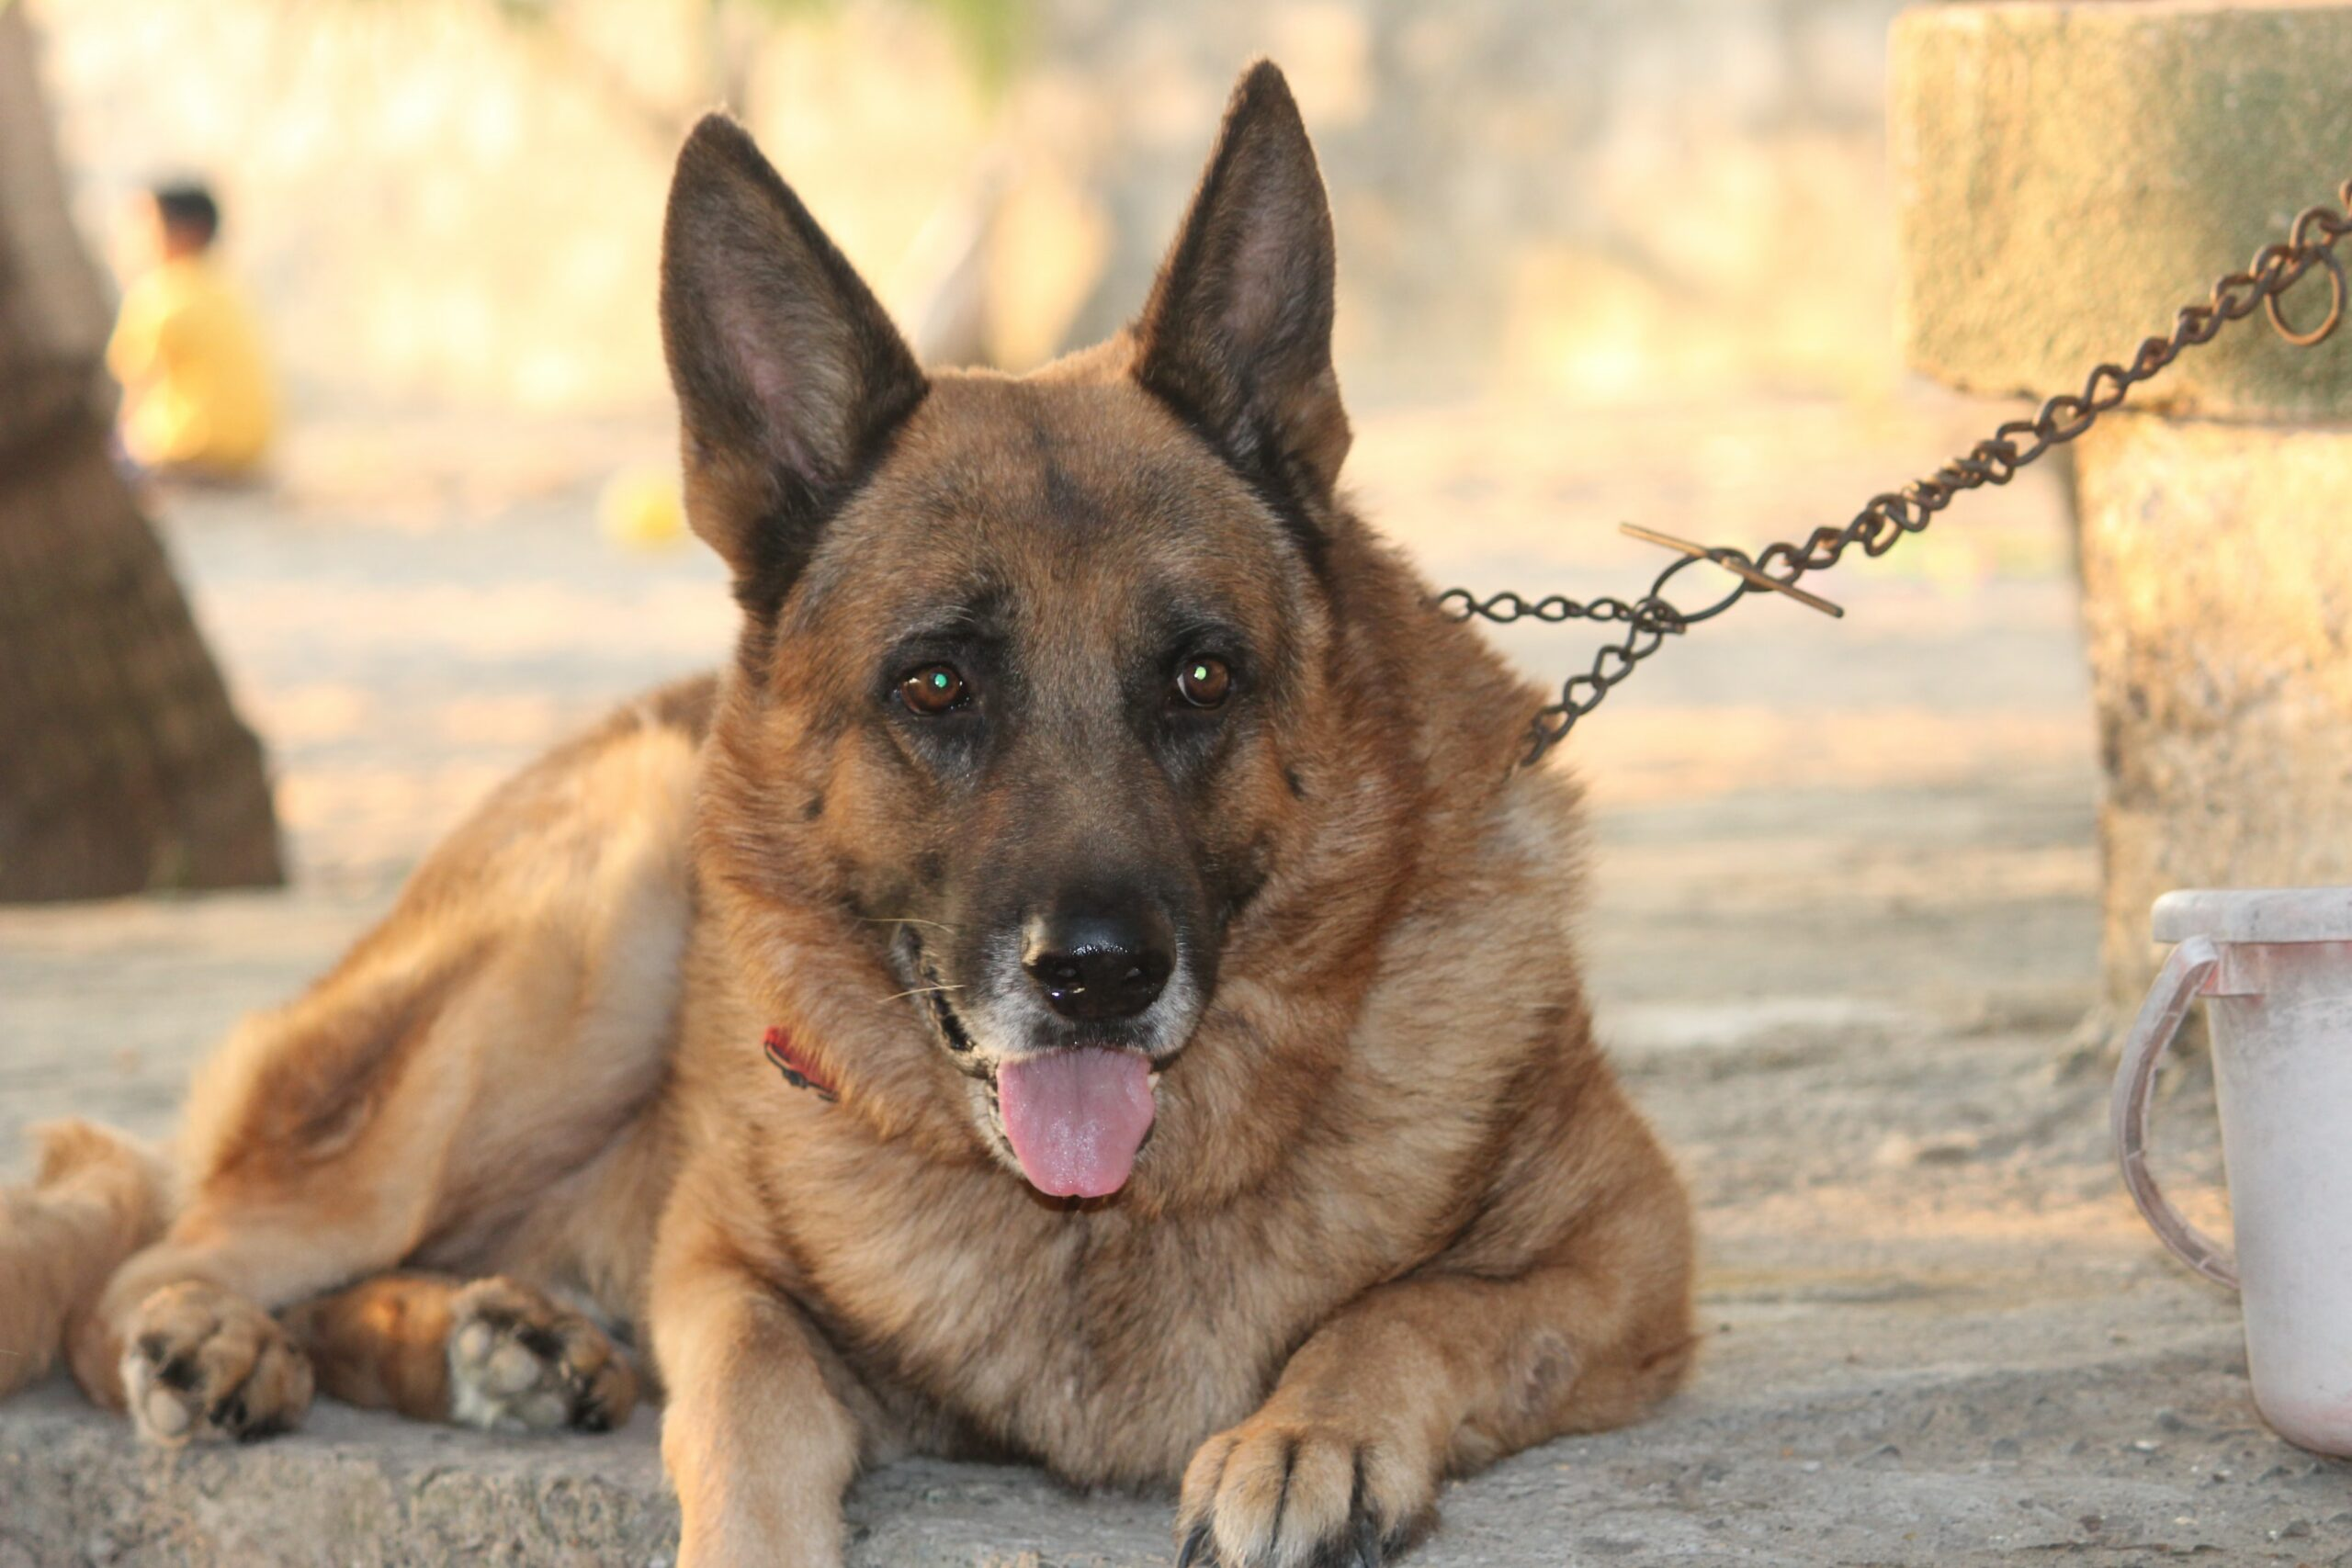 Buying guide of Toys for German Shepherds